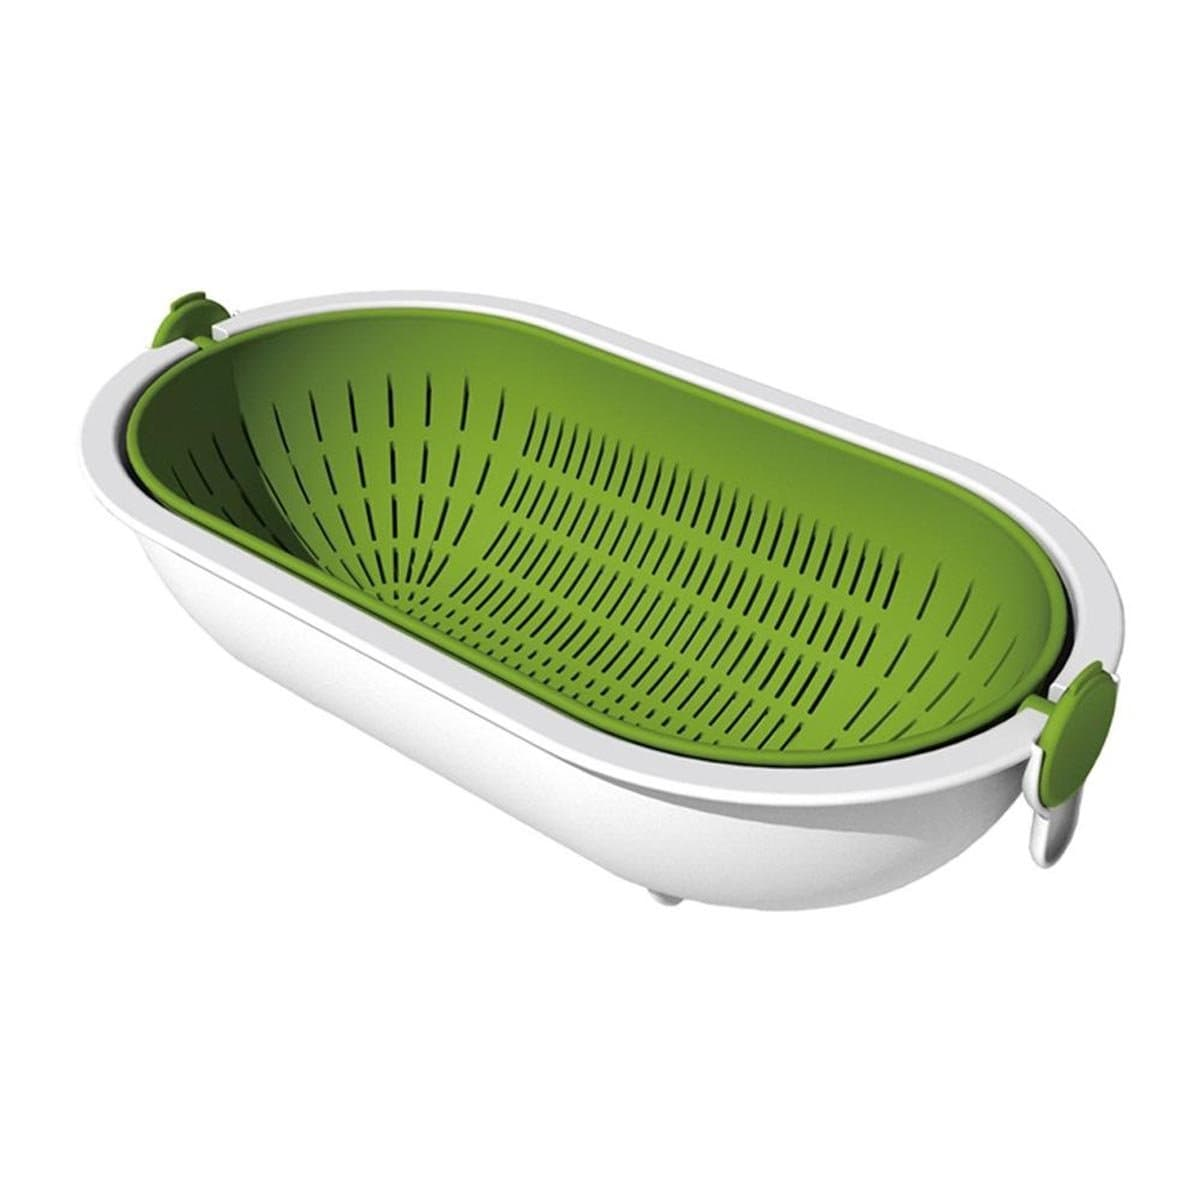 Japanese Plastic Basket Spin Wheel Colander Strainer Oval Green